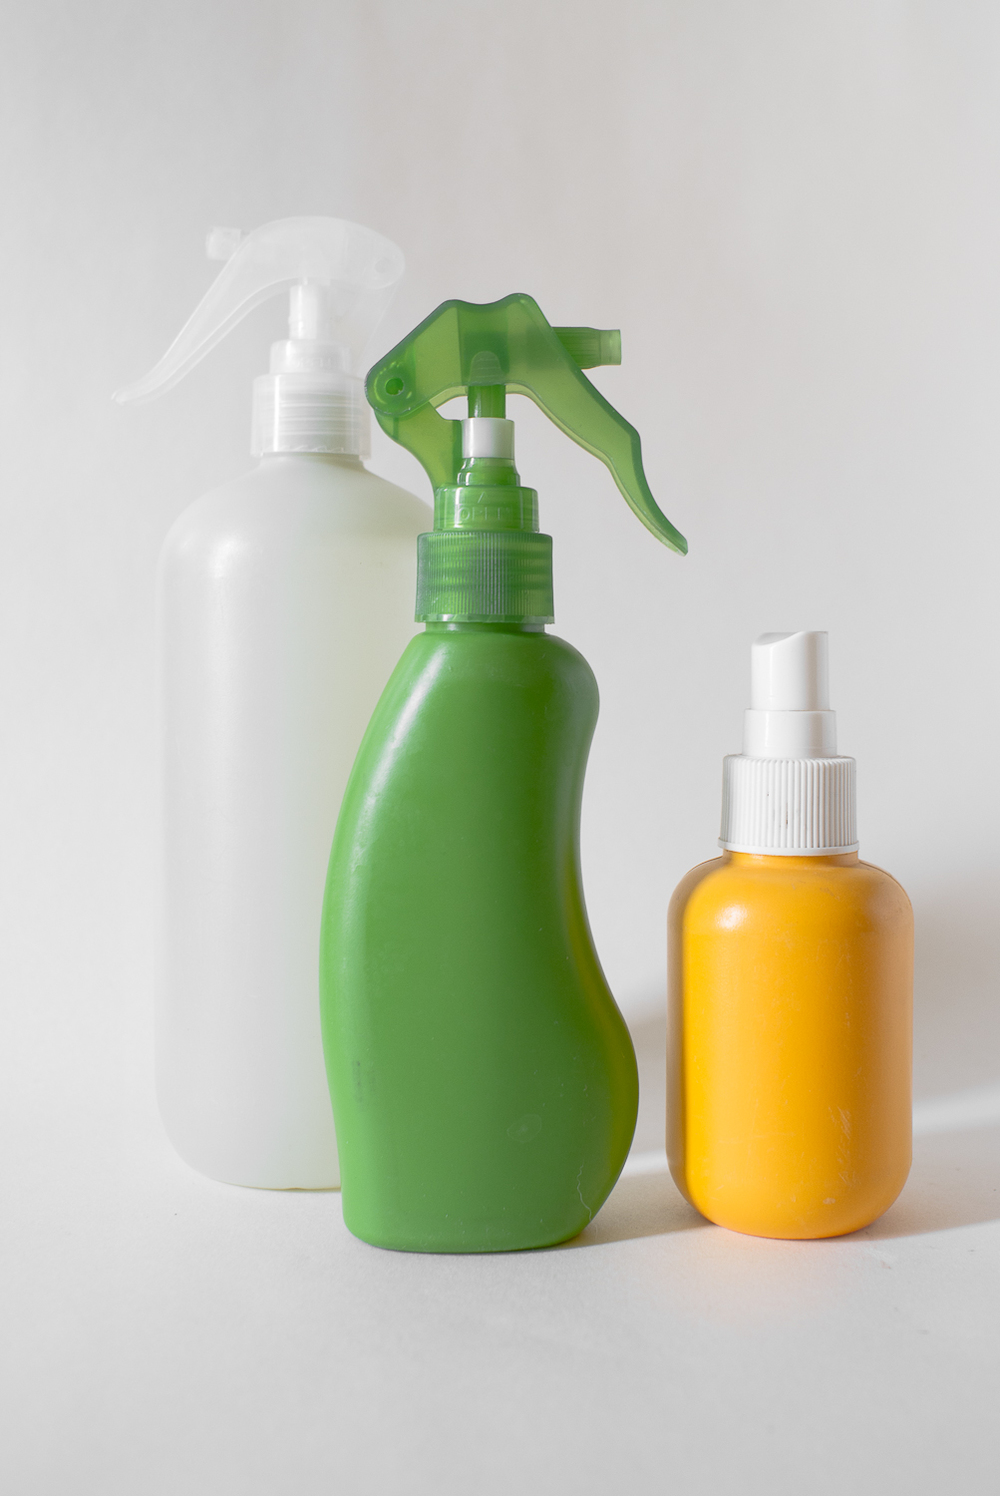 Three sprayers that once held non-toxic substances for household or cosmetic use. Note how elegant they look with the labels neatly peeled off. (Note also that, depending on the adhesive used by the manufacturer, sometimes removing the label is a job for a heavy-duty solvent like lighter fluid.)